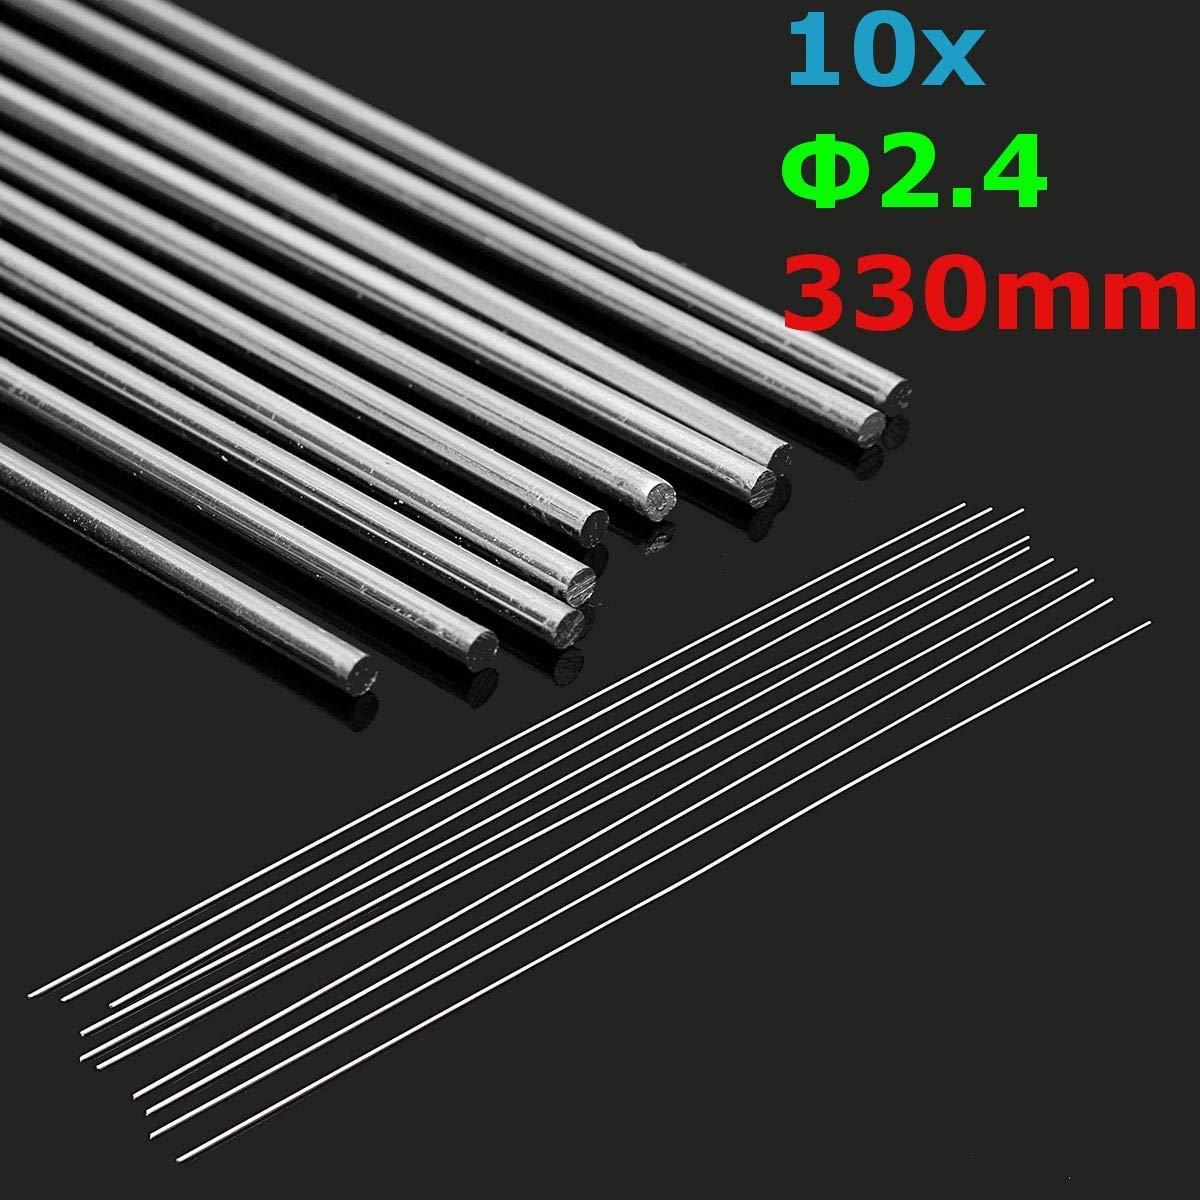 Soldering Accessories 10Pcs 2.4mmx330mm Aluminum Alloy Silver TIG Filler Rods Welding Brazing Wire Tools Power Tool Accessories